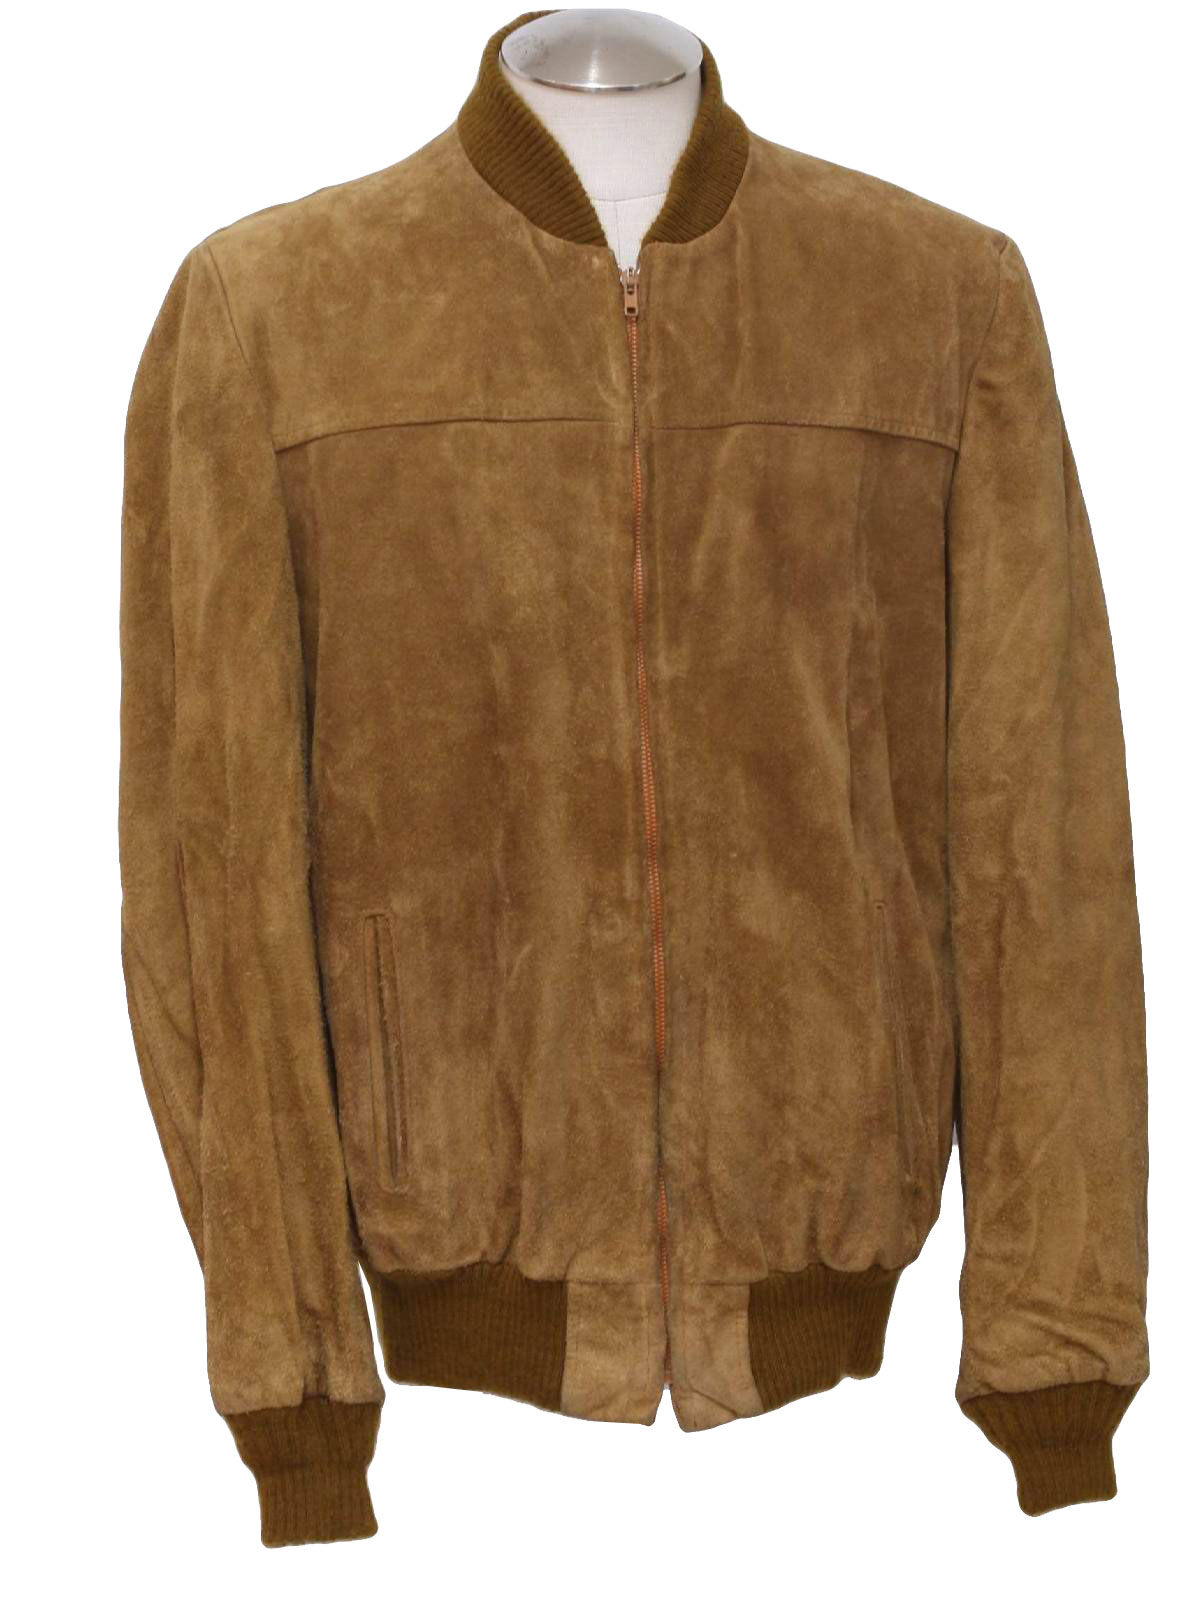 Brown suede leather jacket mens